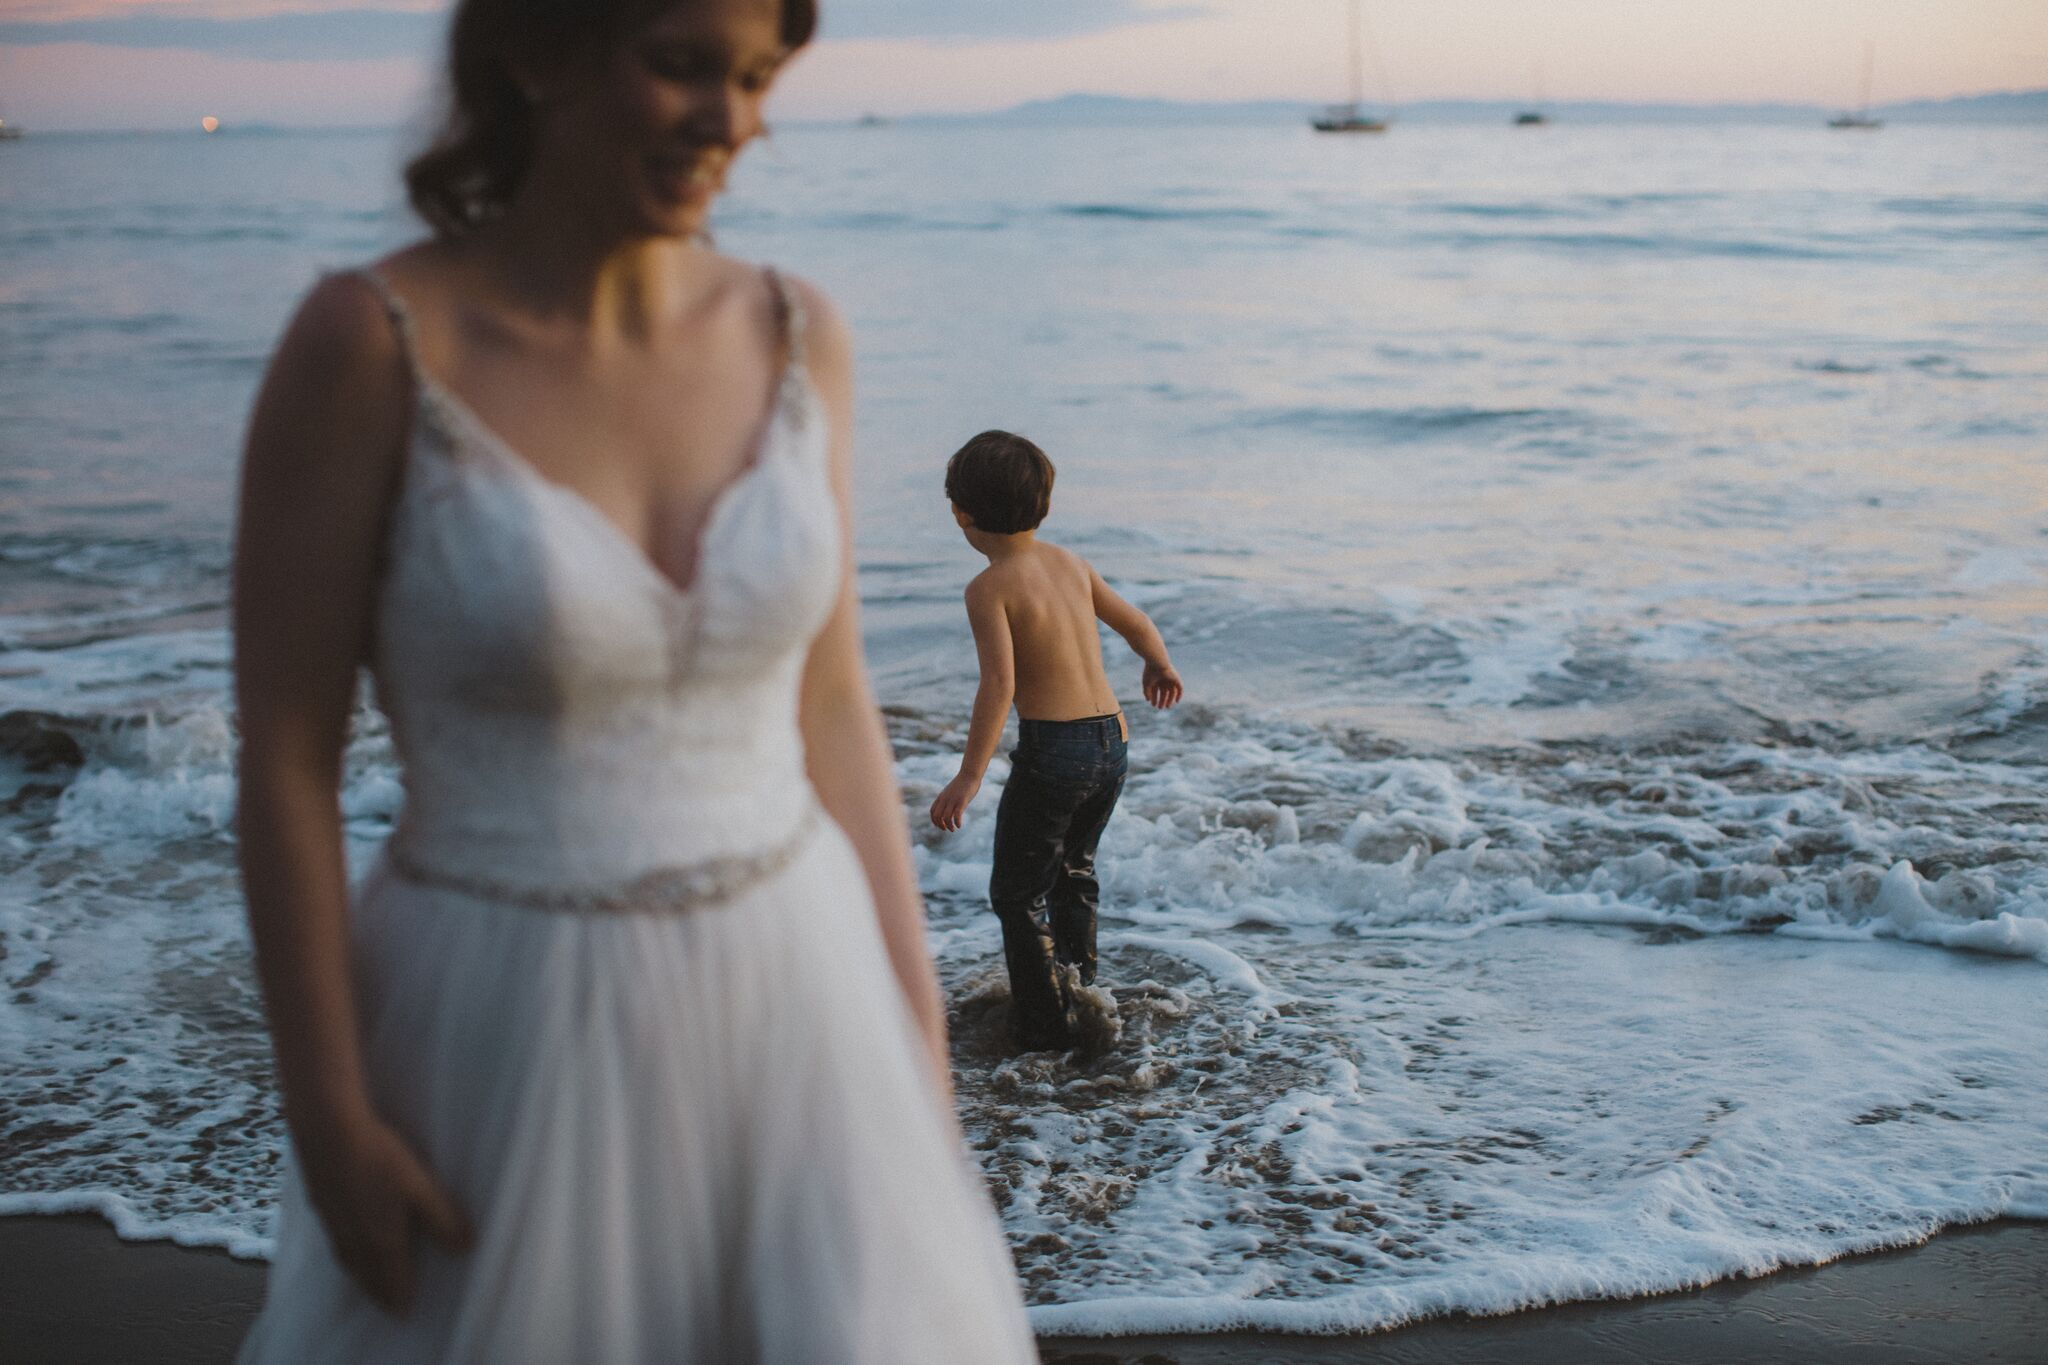 www.santabarbawedding.com | Venue: Santa Barbara Courthouse | Photography: Ryanne Bee Photography | Officiant: Santa Barbara Classic Weddings | Bride and Child Playing in the Sea